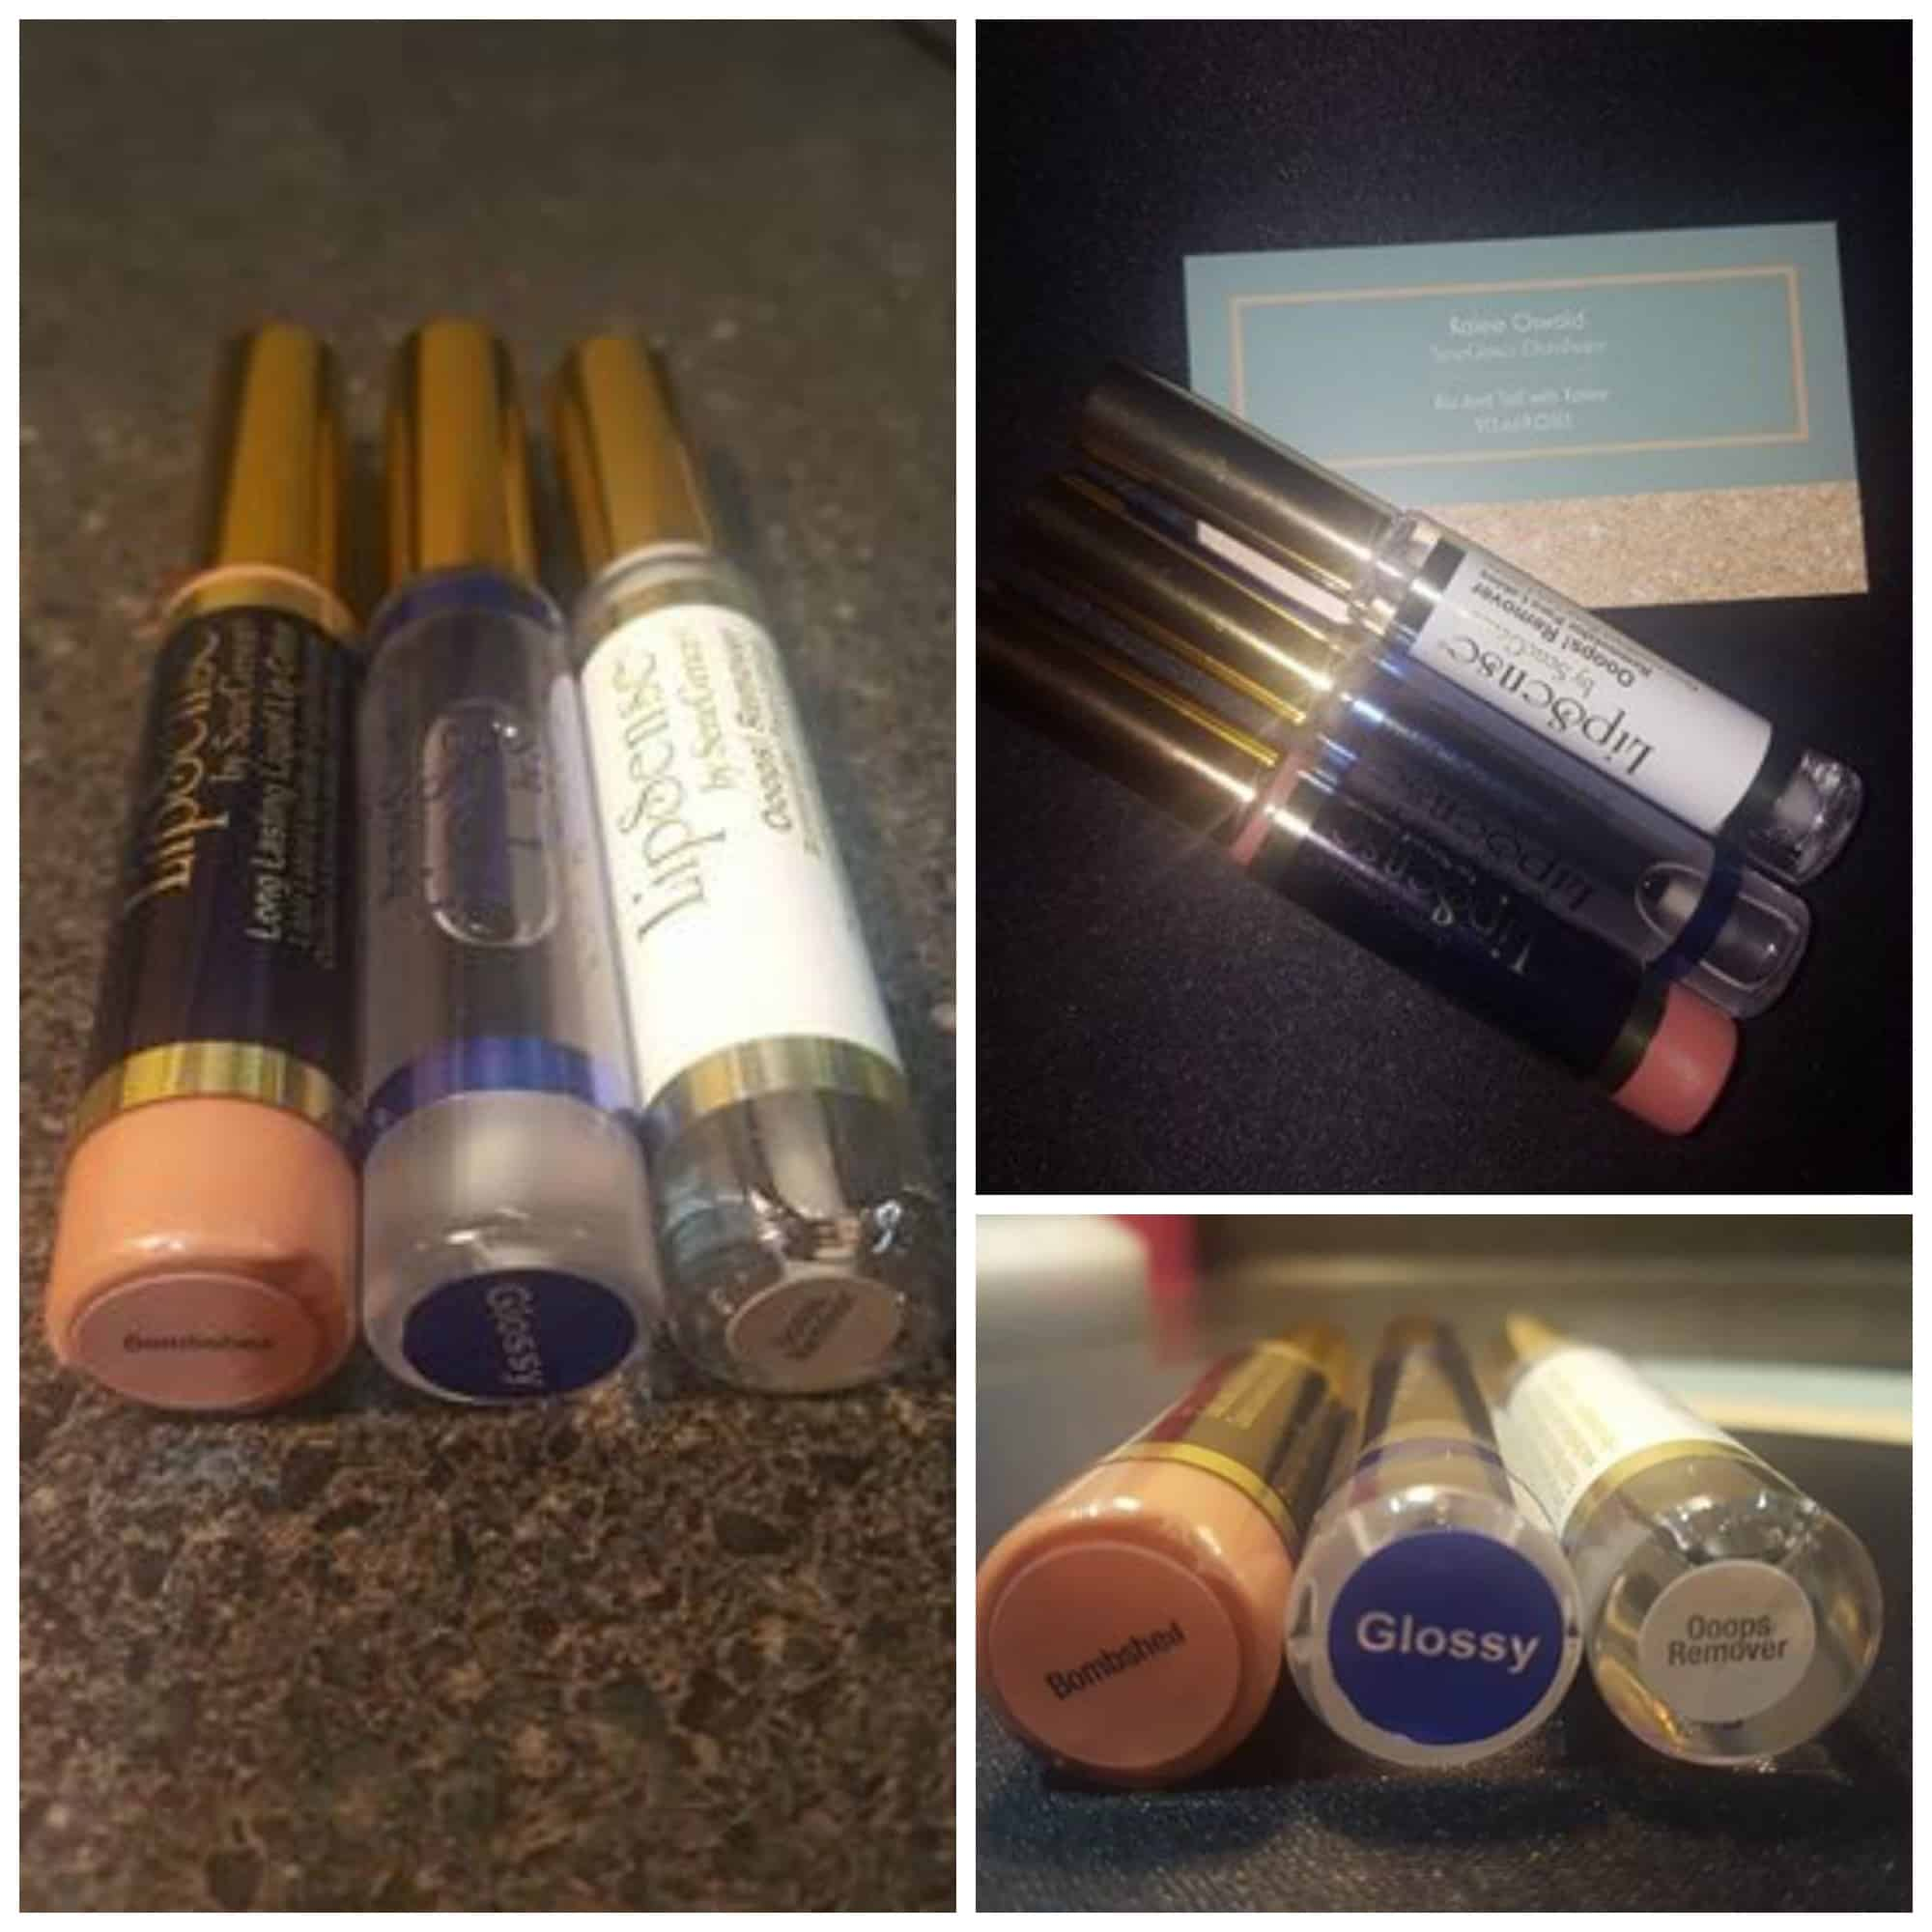 Enter to Win a Lipsense Collection Kit ($55 Value) #ForTheWin #TheHoppingBloggers